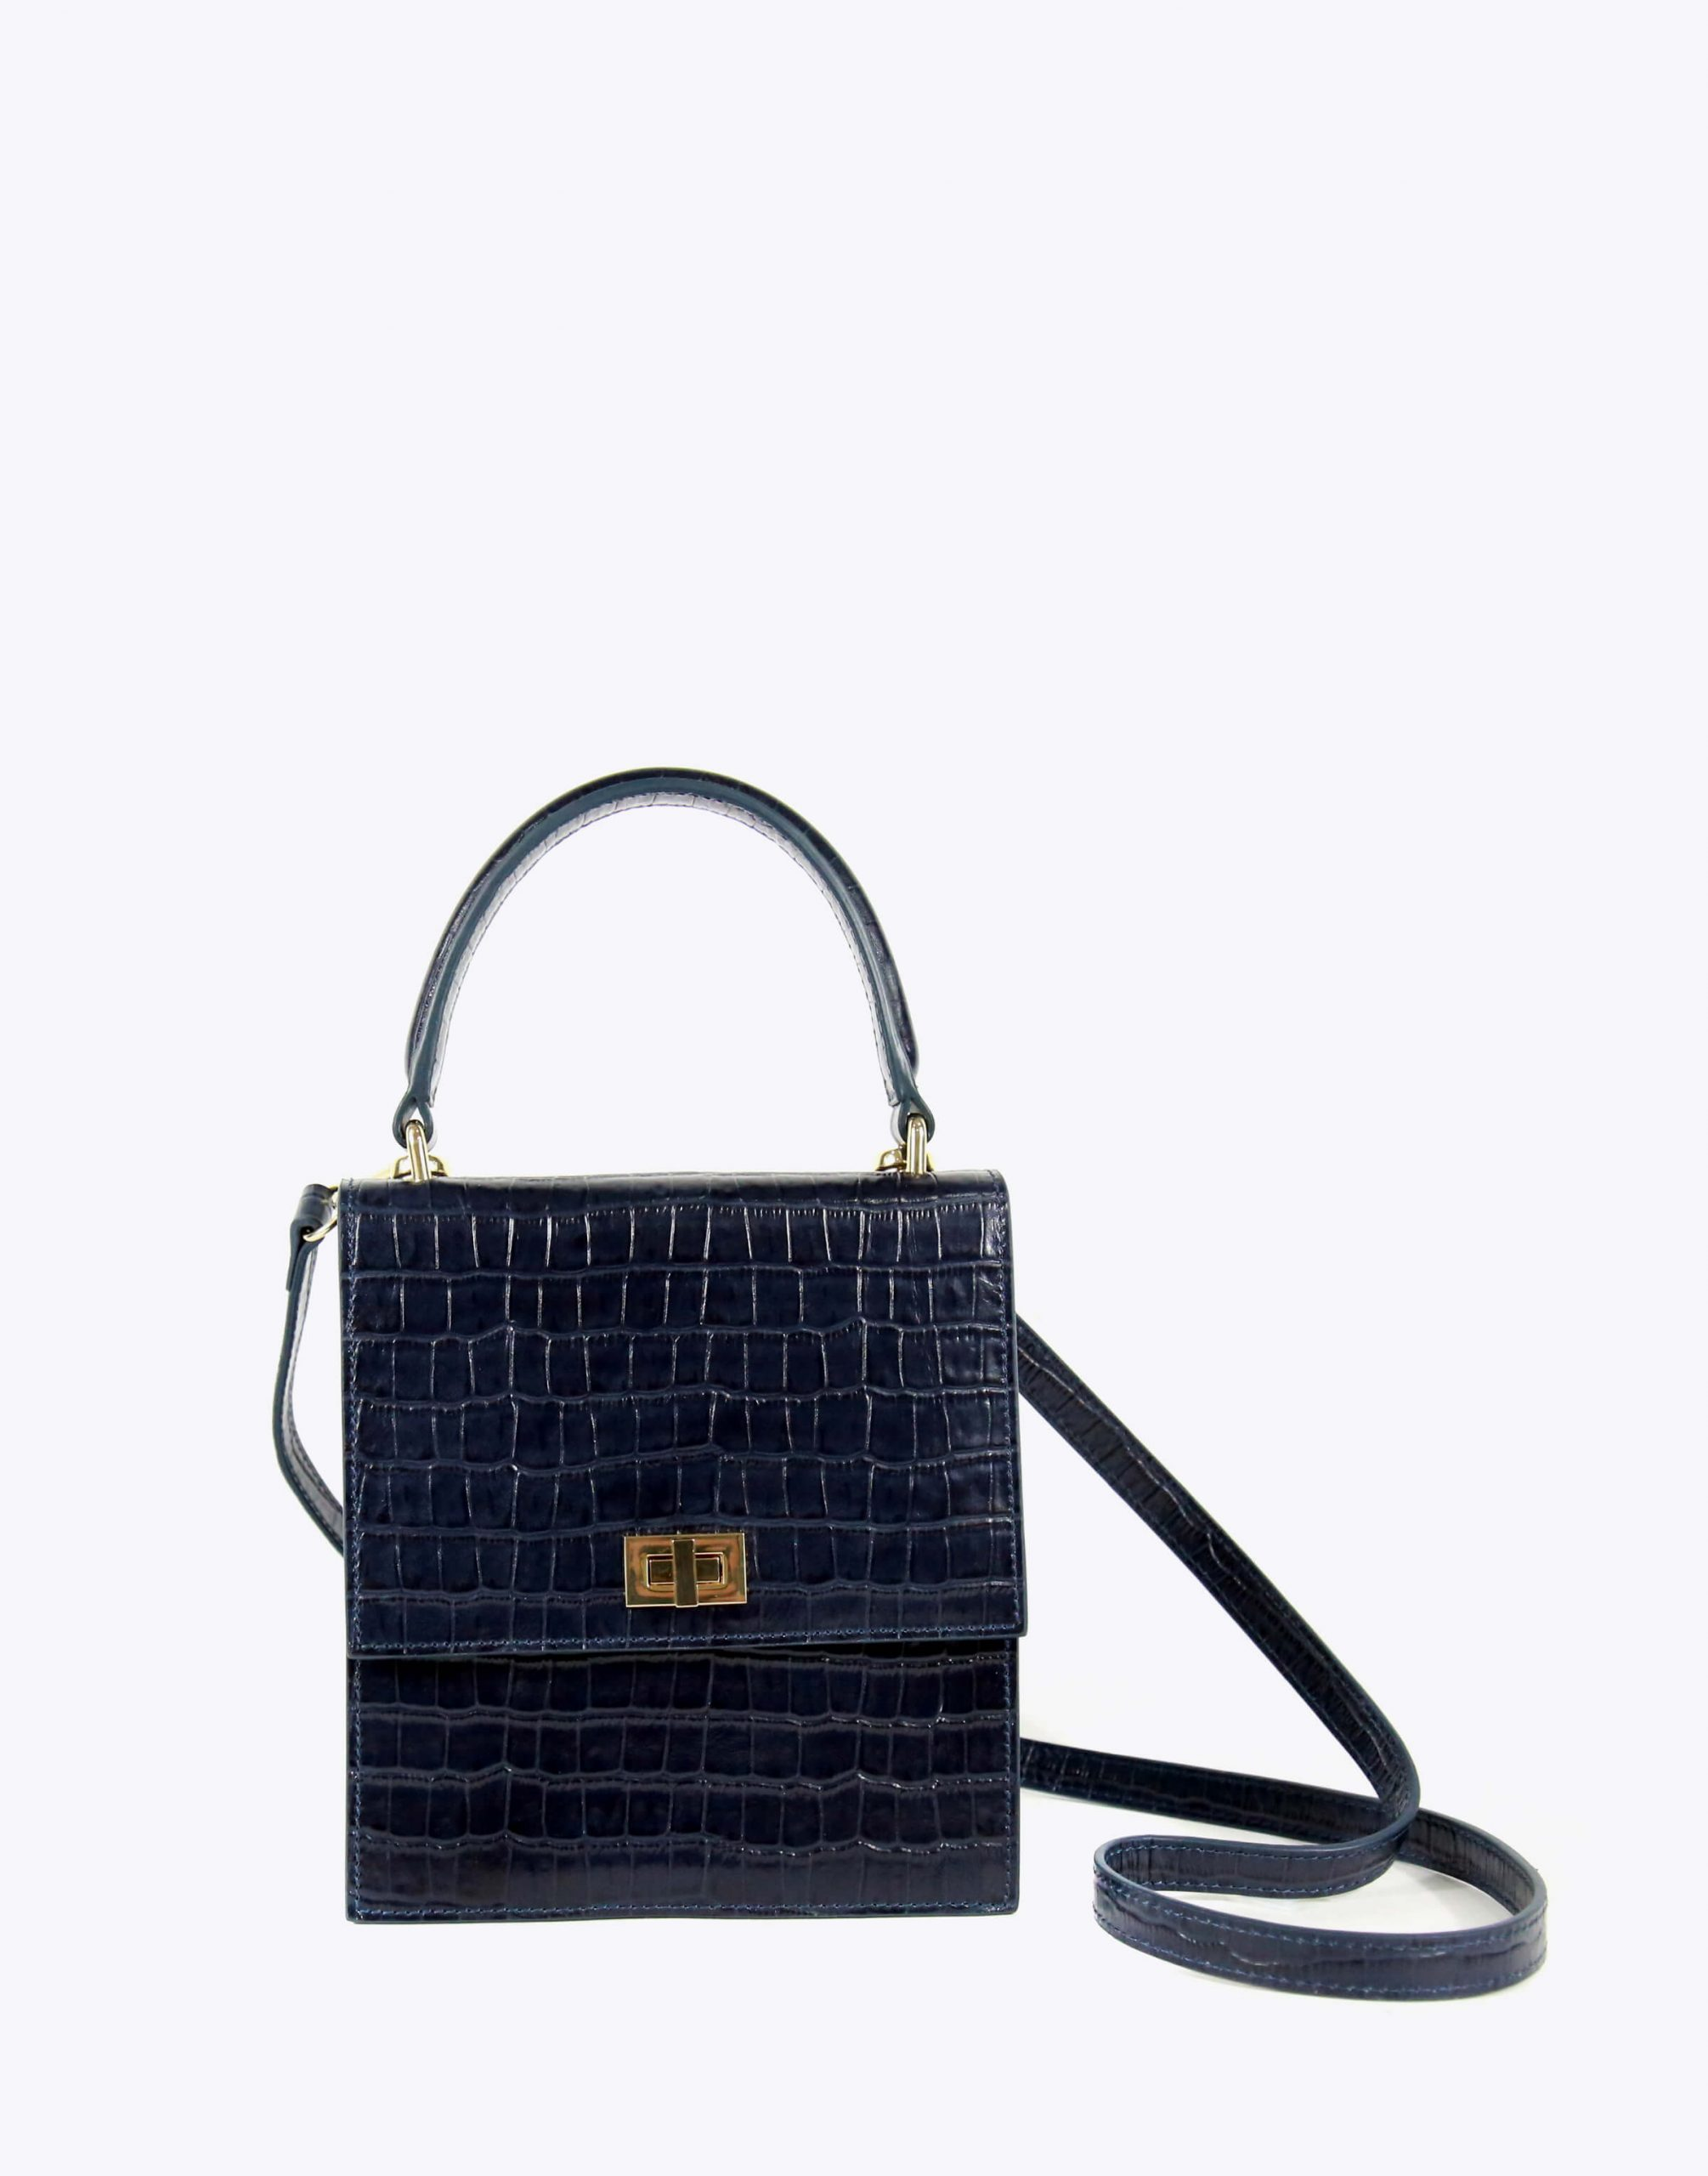 Neely & Chloe No. 19 Mini Lady Bag Croc Strap View Navy